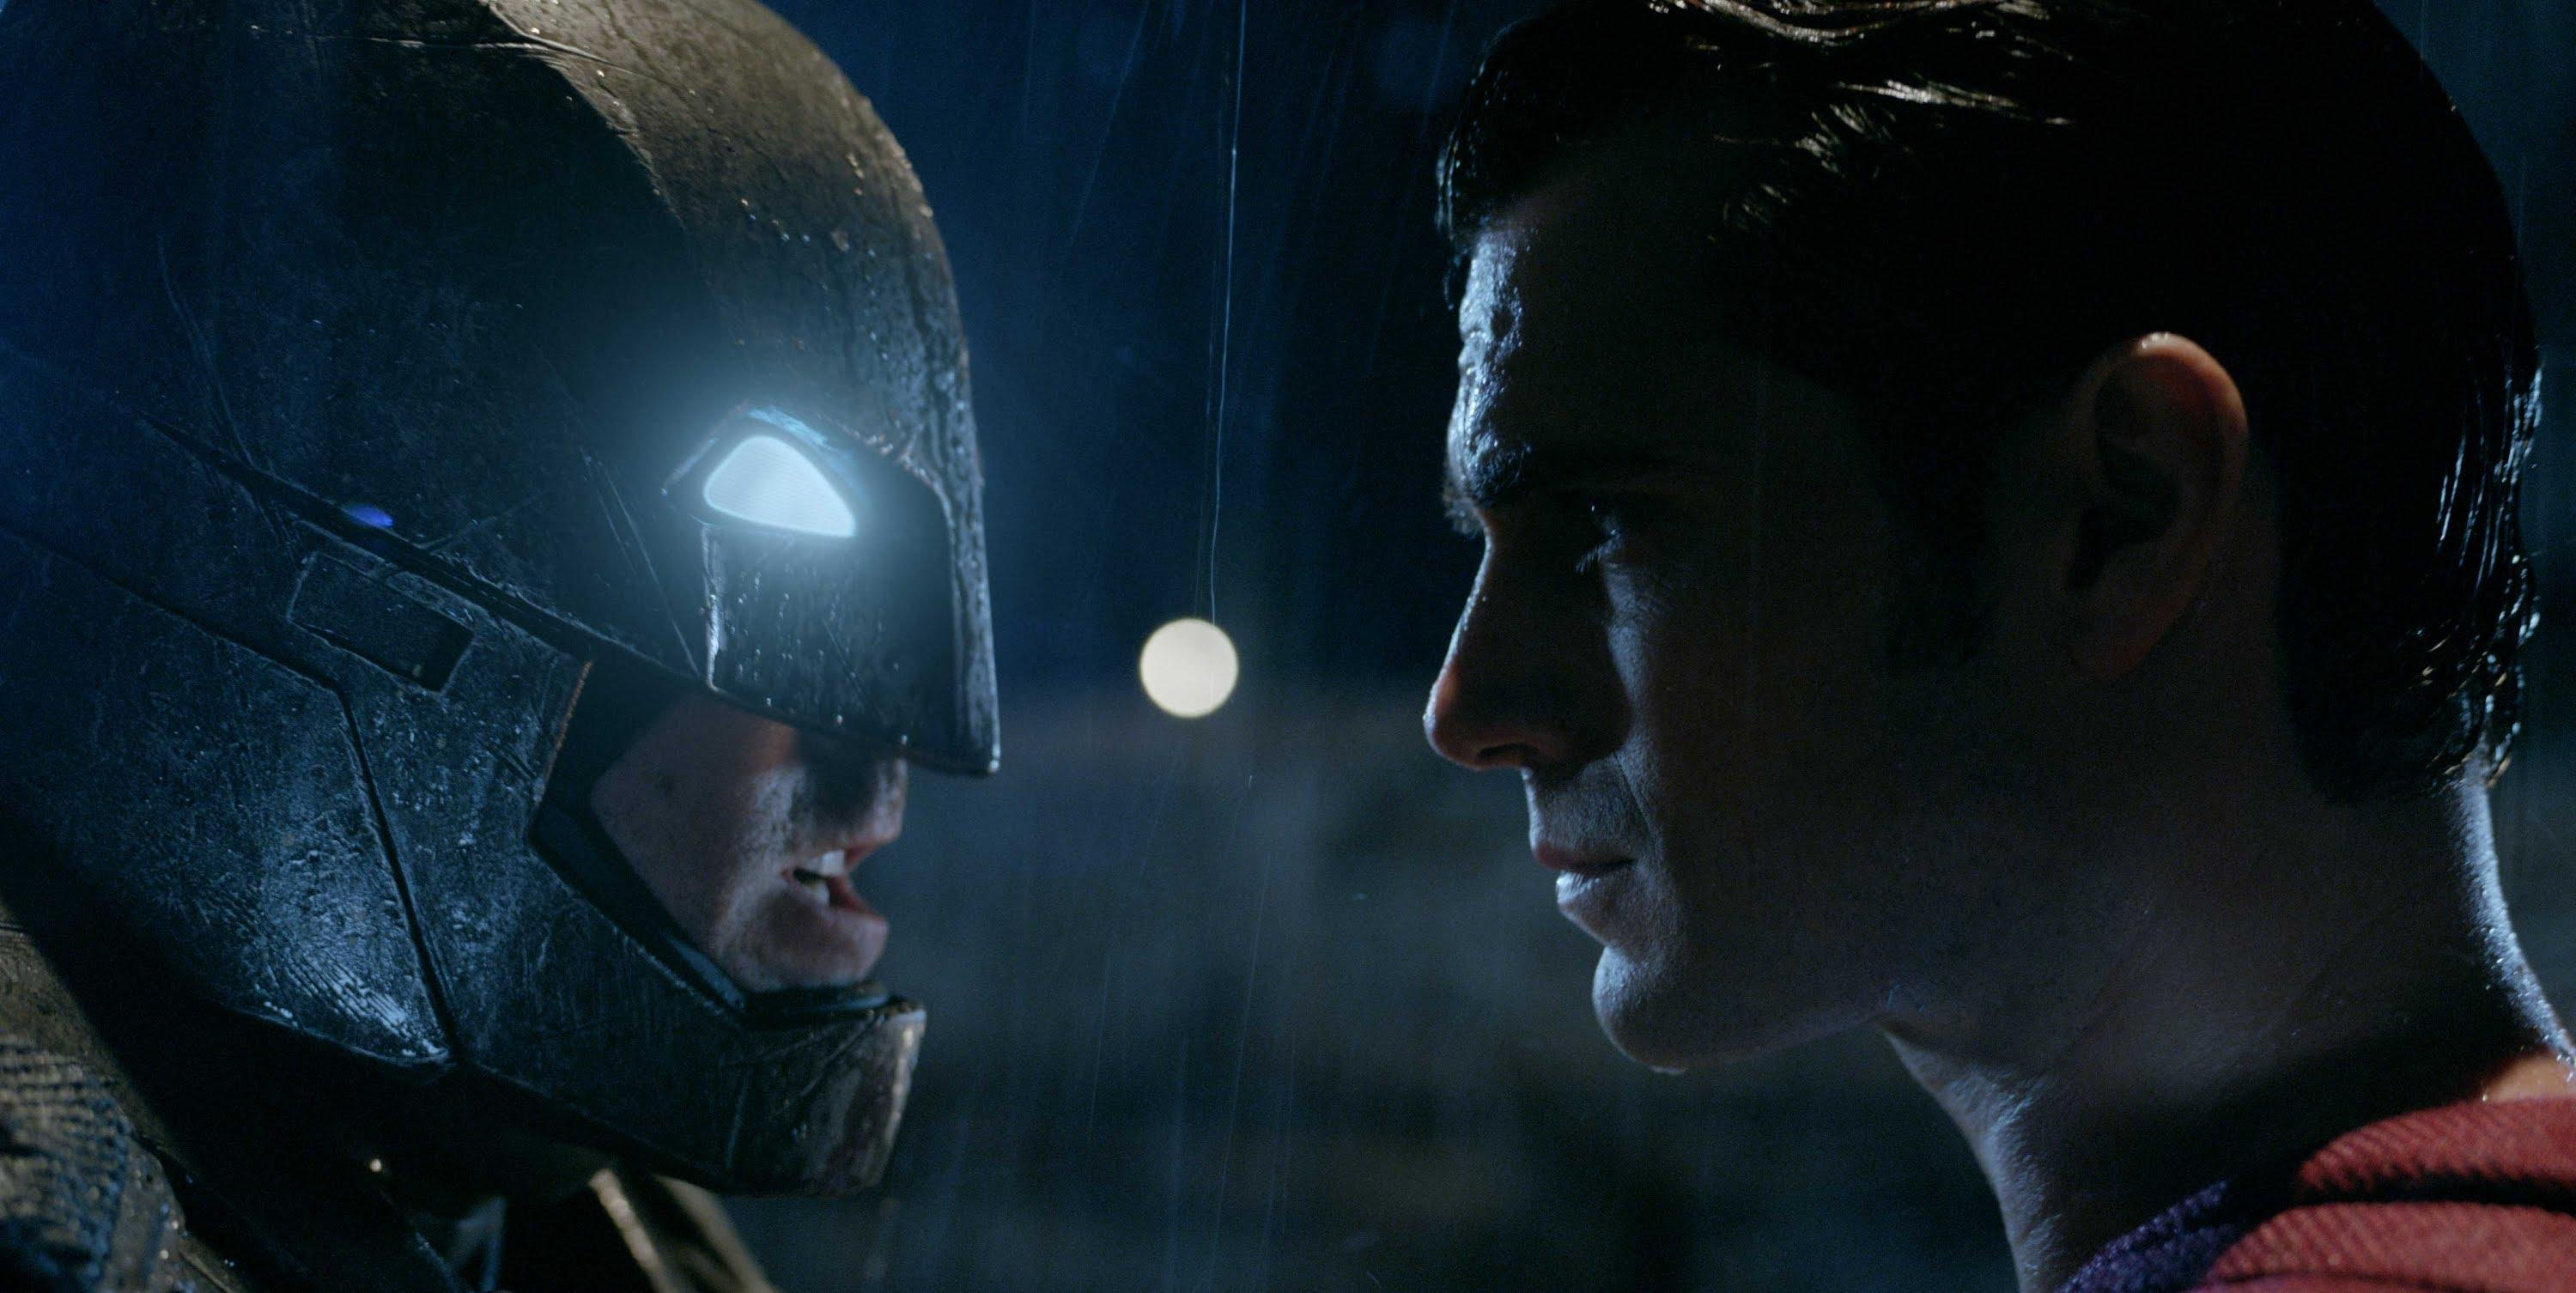 Batman (left), played by Ben Affleck, and Superman (right), played by Henry Cavill are set to duke it out in Warner Brother's